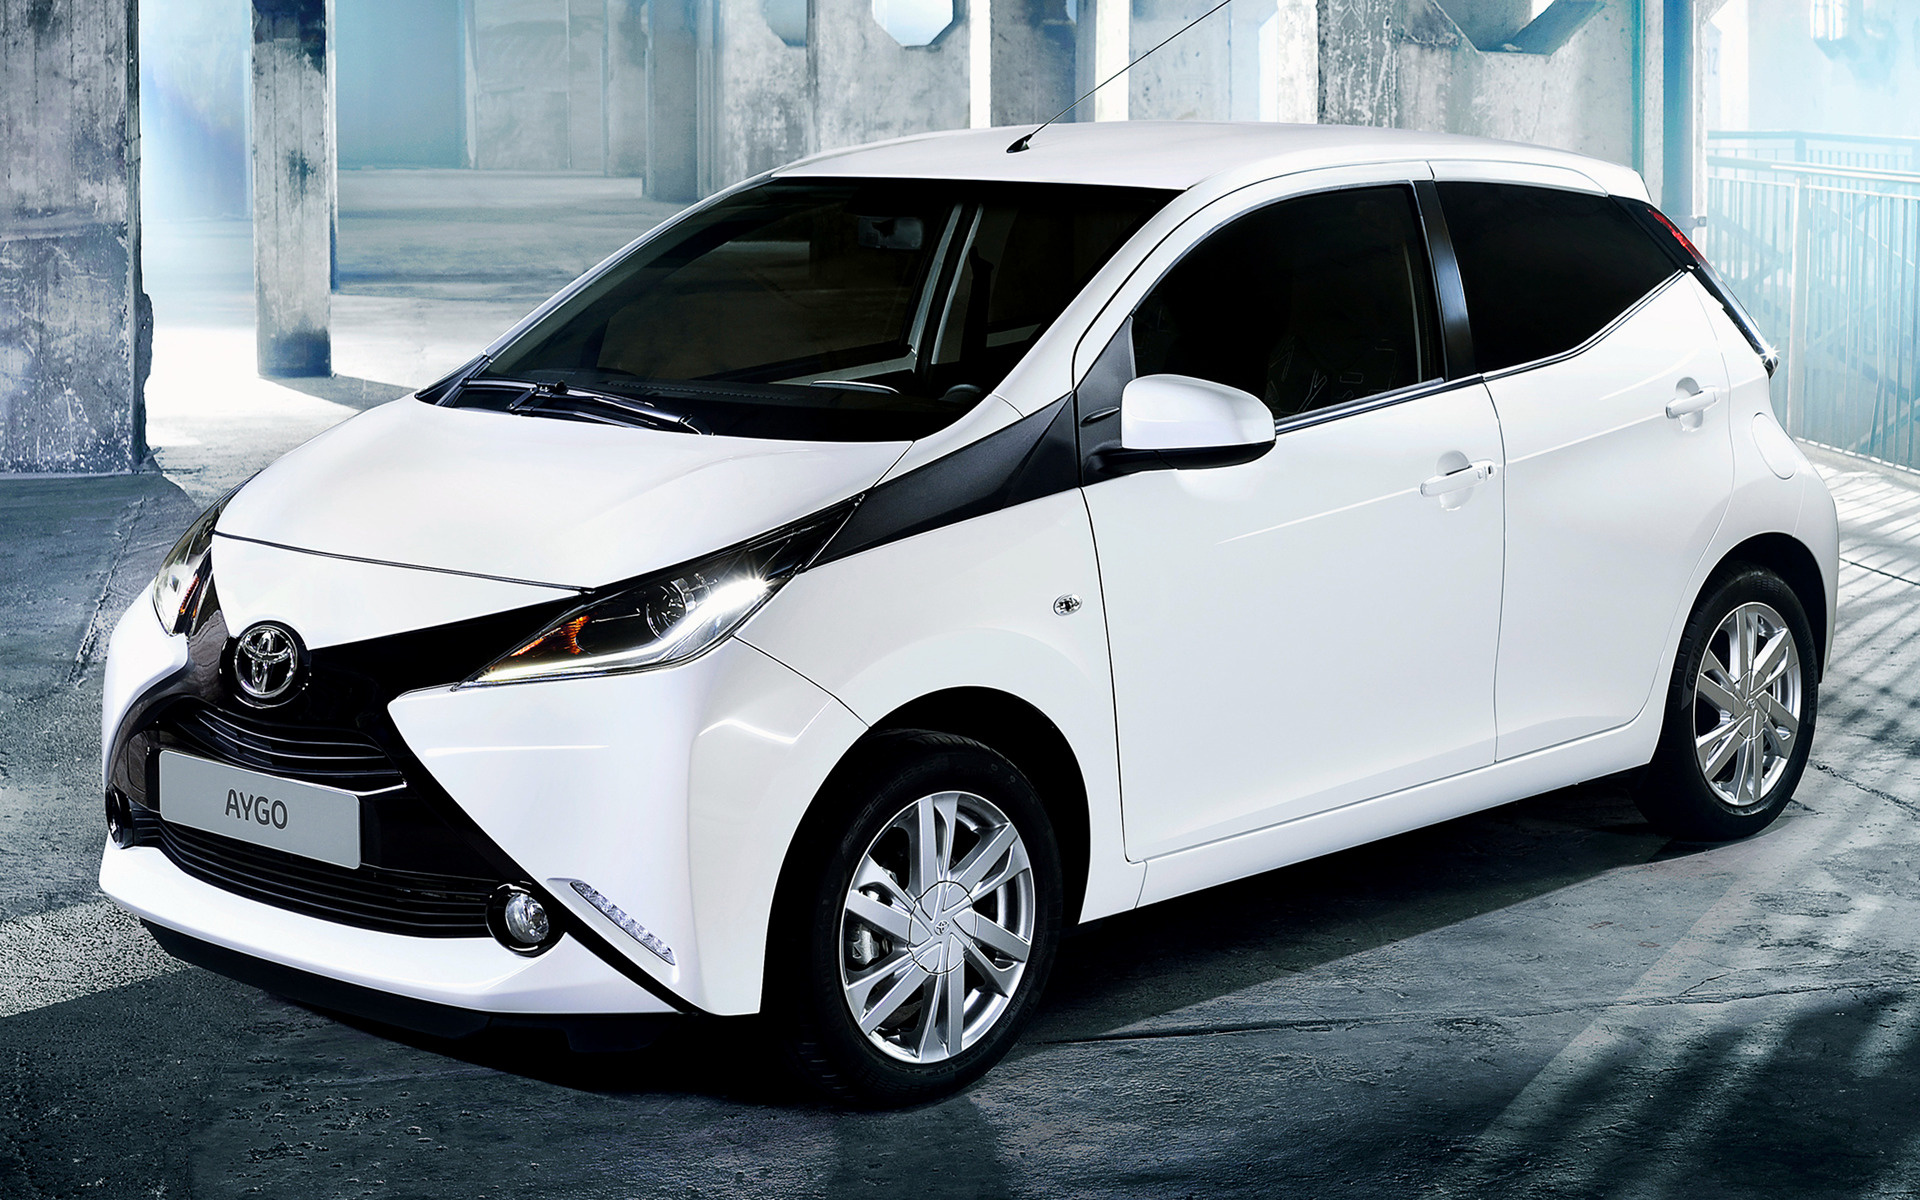 Mazda Car Hd Wallpaper 2014 Toyota Aygo X Play 5 Door Wallpapers And Hd Images